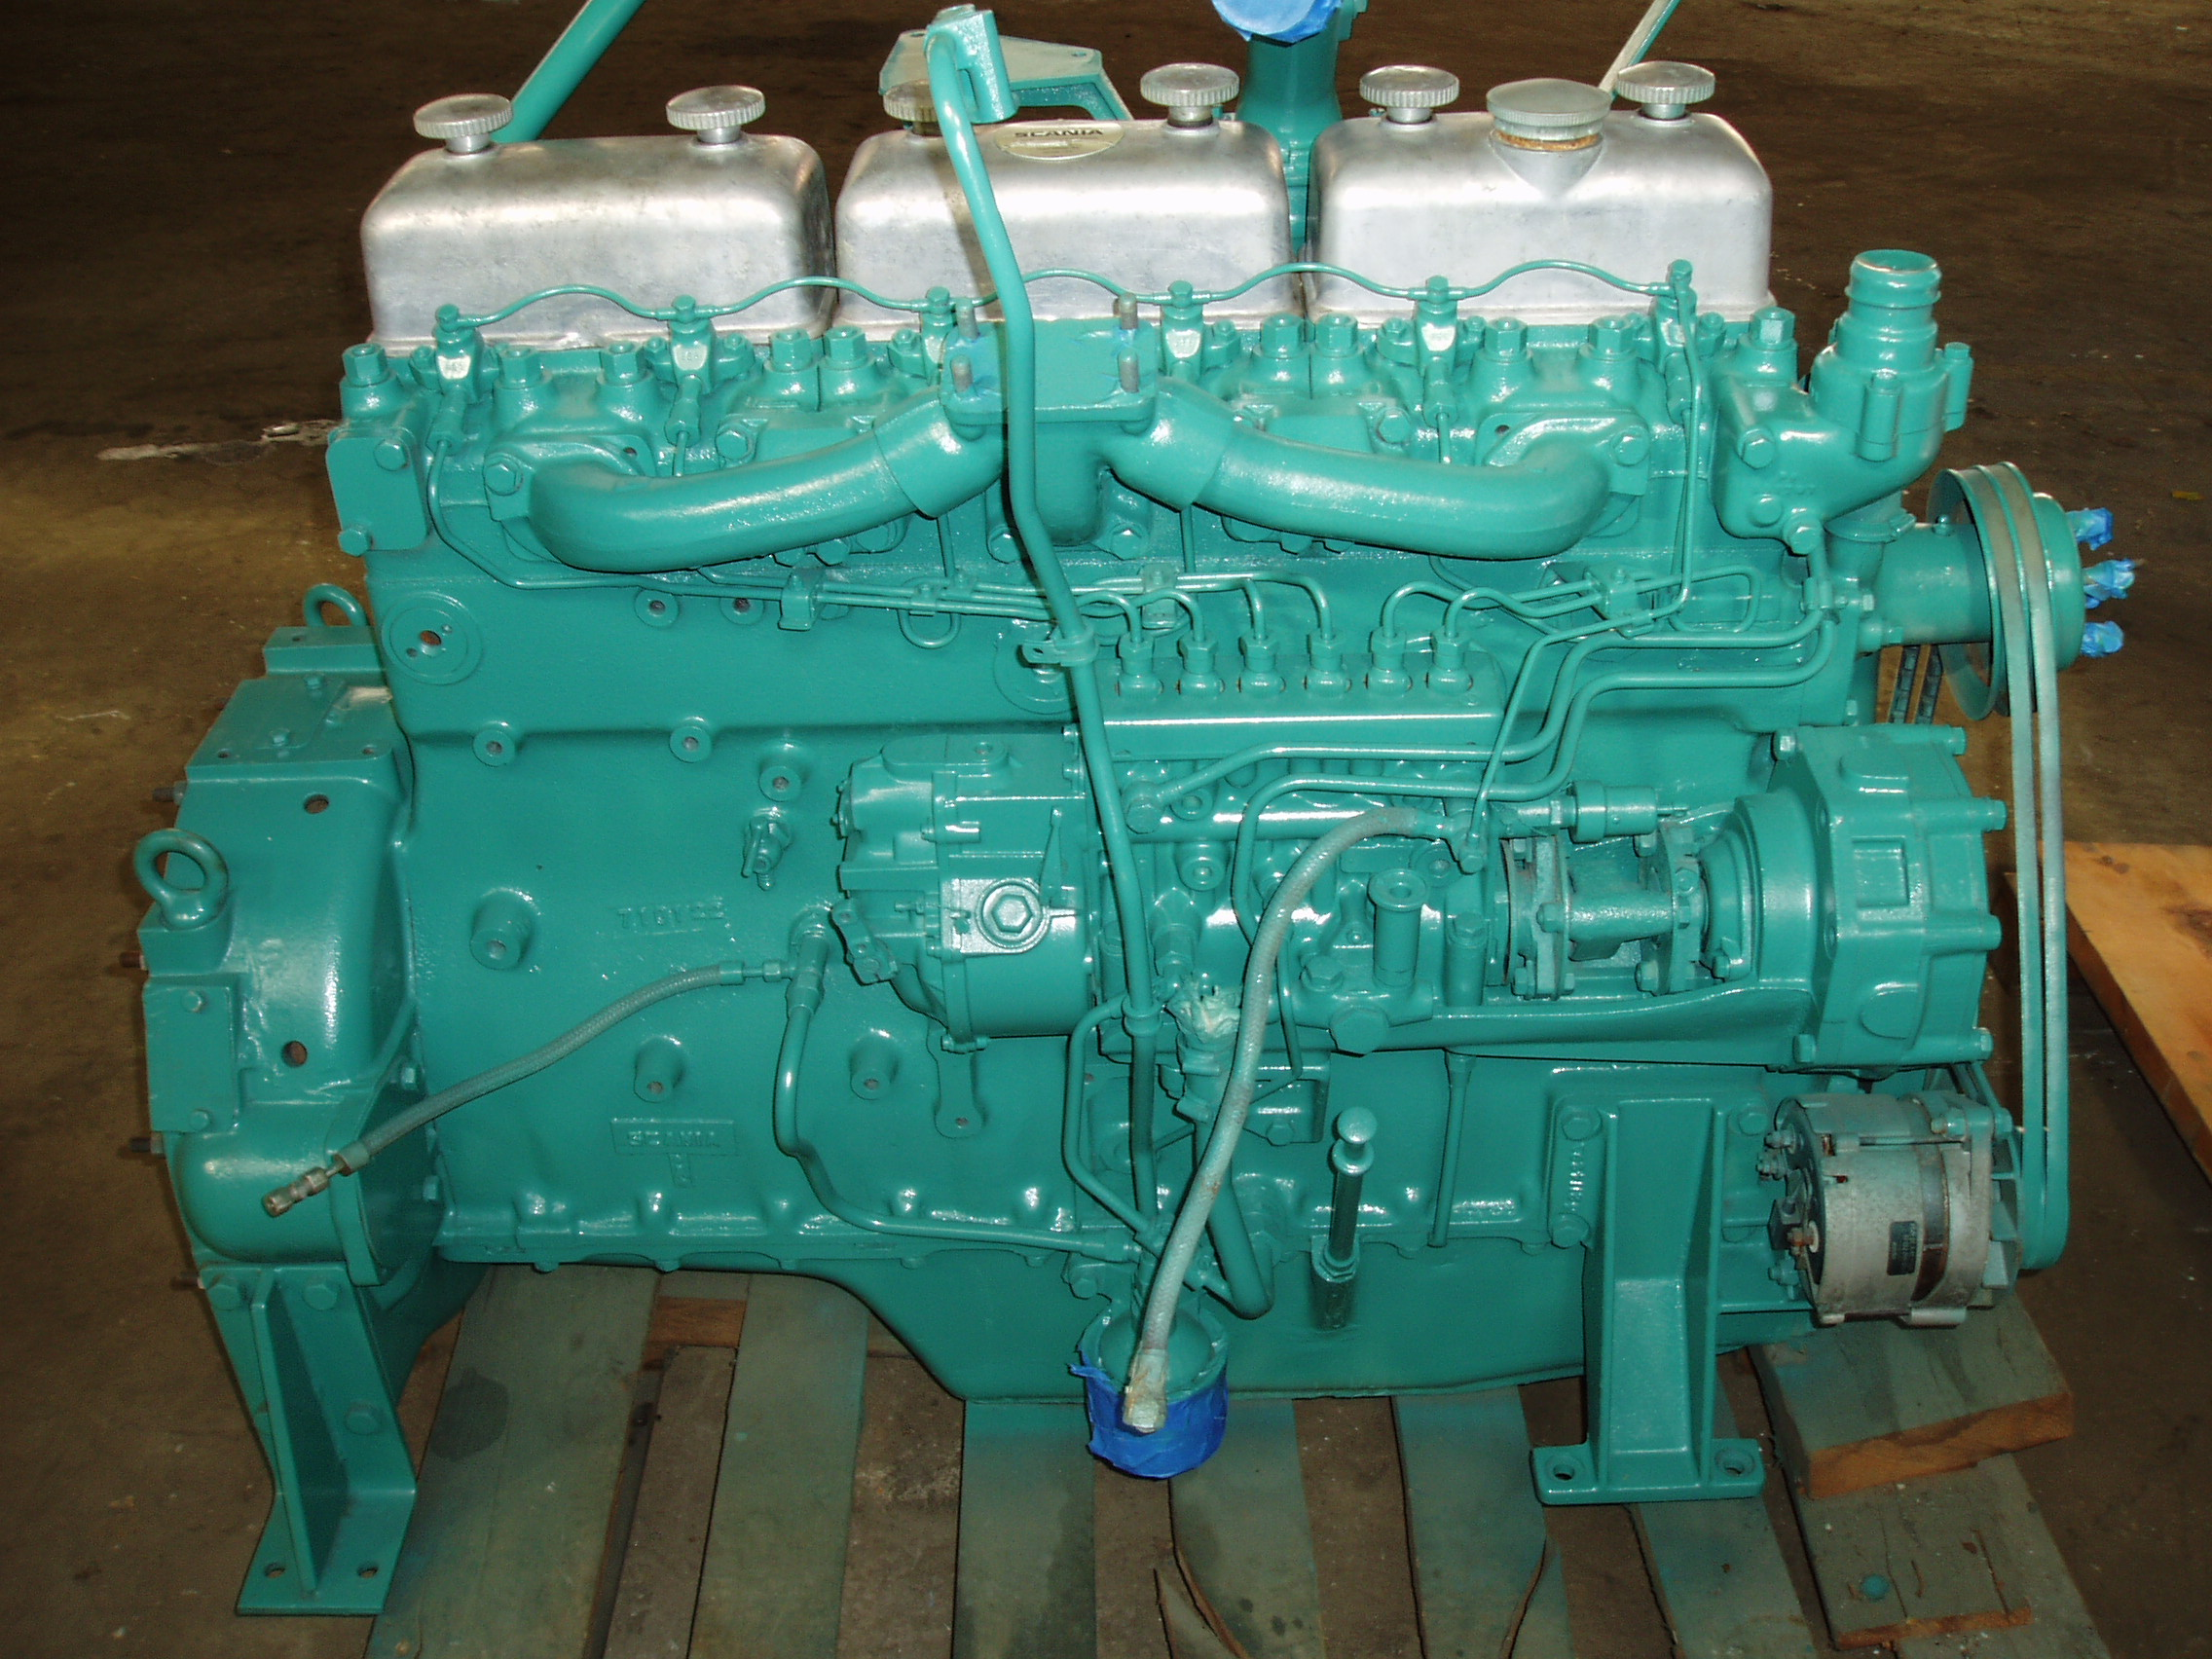 scania ds8 scania ds8r40 and scania ds802 engines cylinder head rh jobbersinc com Scania Truck Engines Scania Engine Model